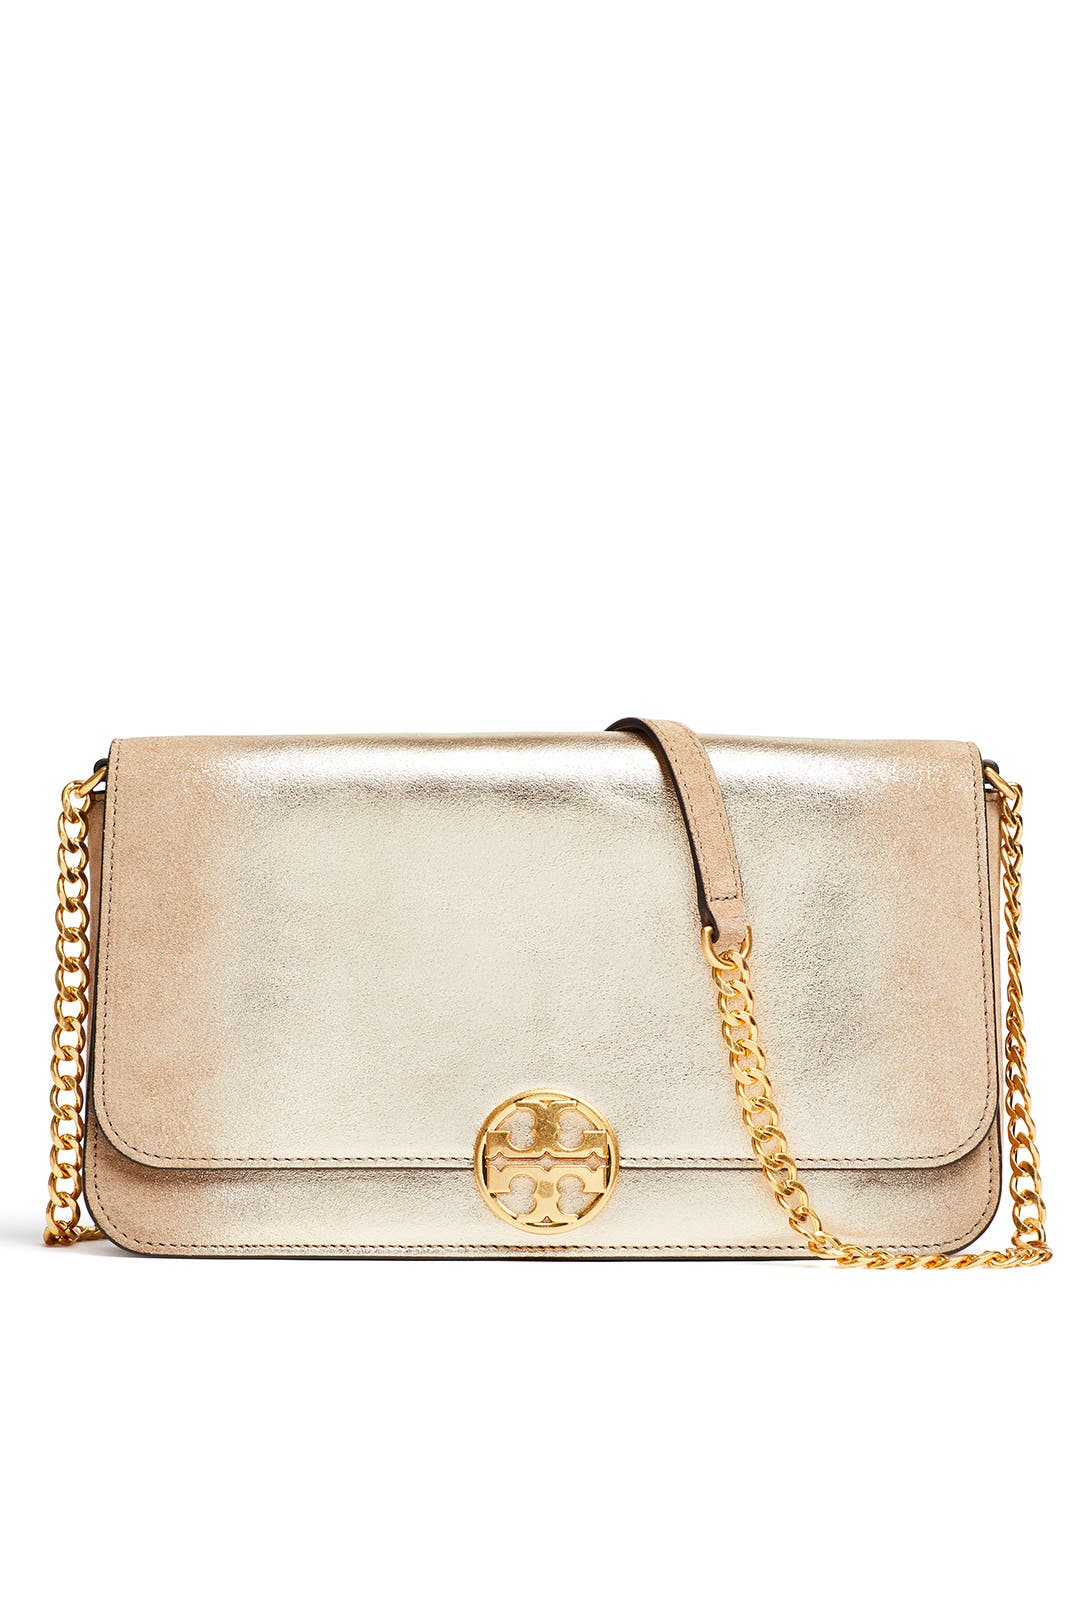 425ef3f1d2 Gold Chelsea Crossbody by Tory Burch Accessories for $60 | Rent the ...